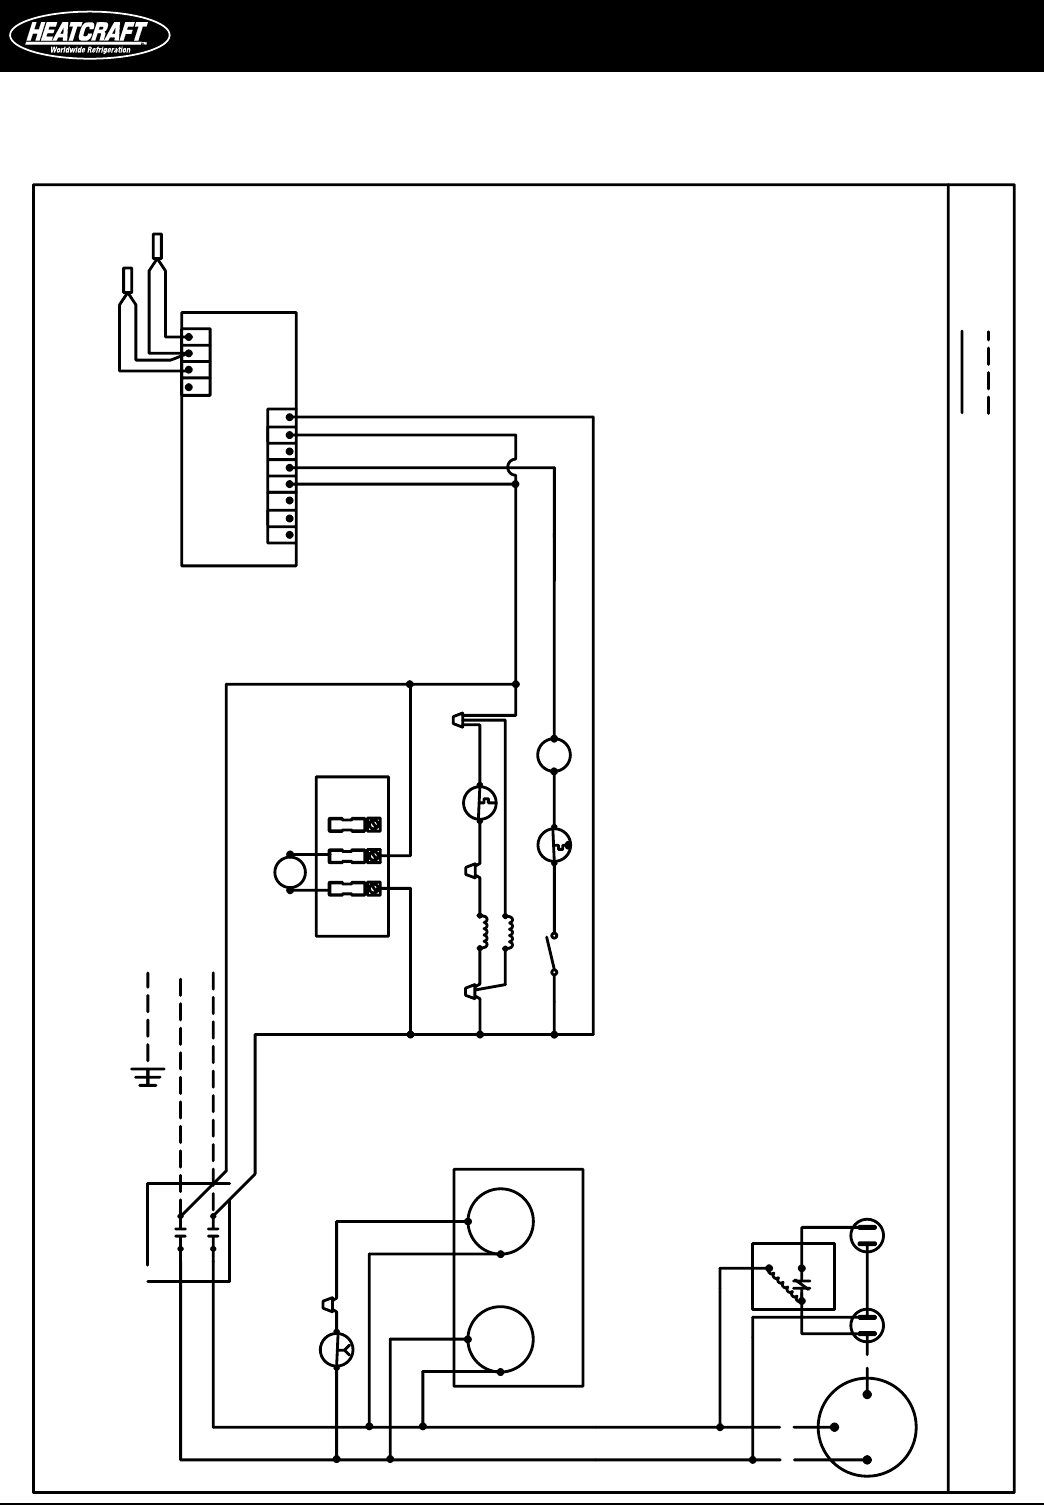 55587f91 c859 def4 0921 730c5709c050 bg10 page 16 of heatcraft refrigeration products refrigerator pro3 user heatcraft wiring diagram at mifinder.co